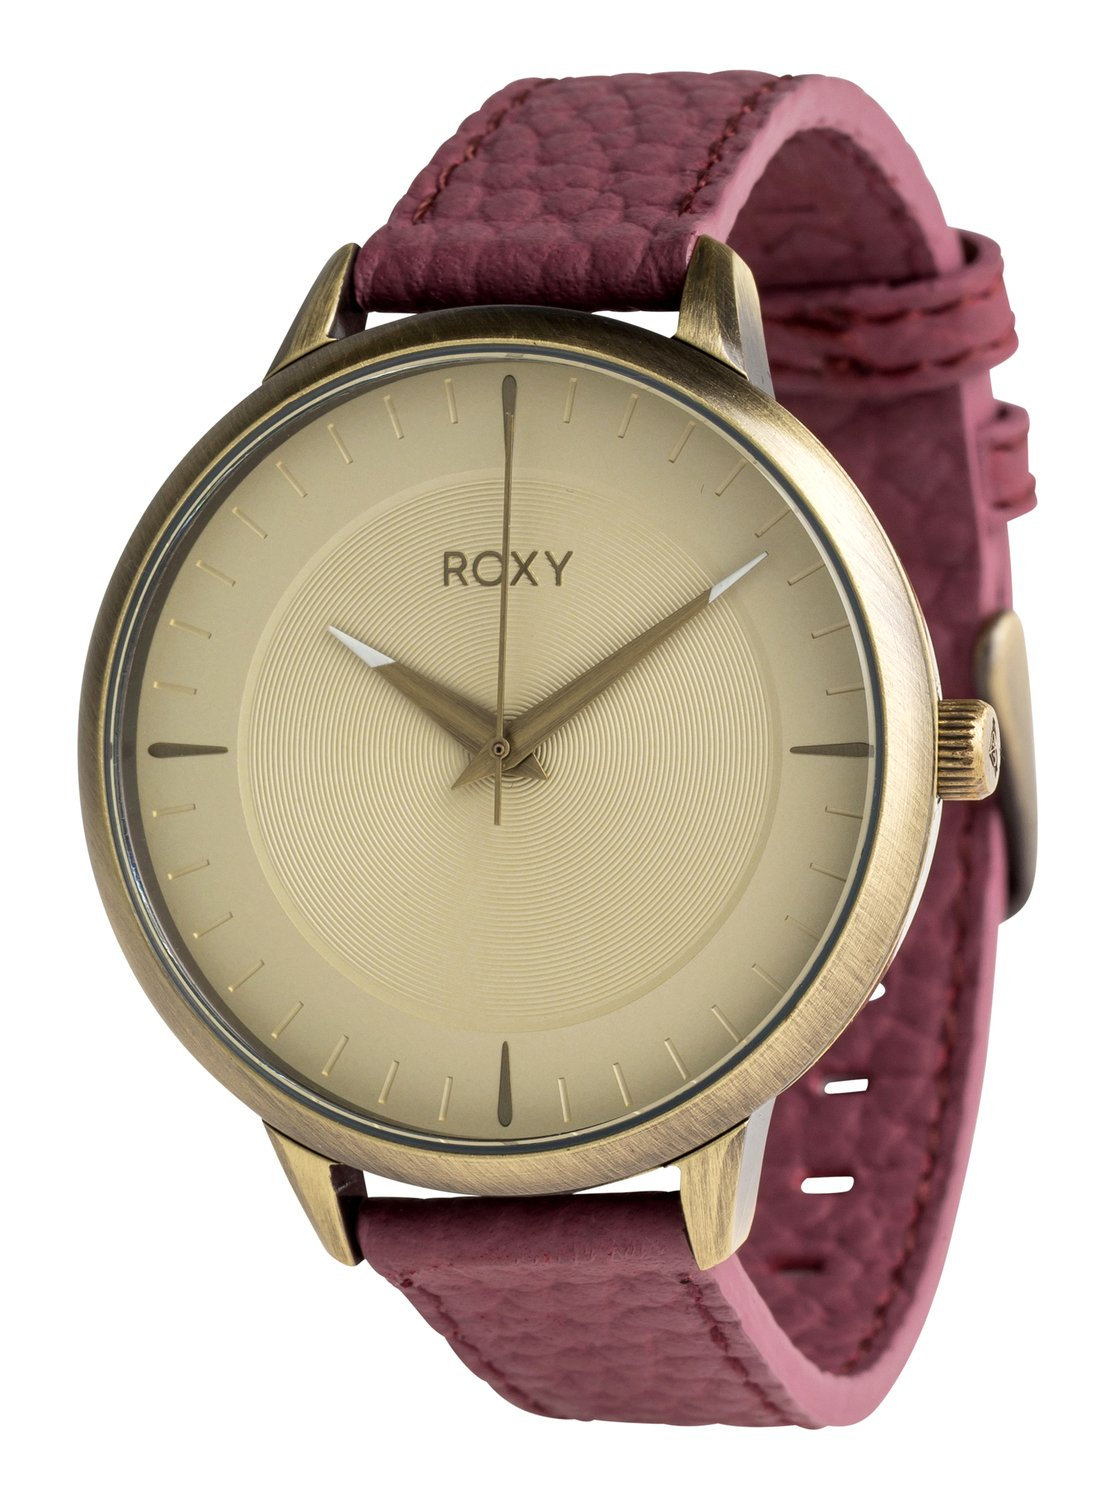 Vintage roxy watch co